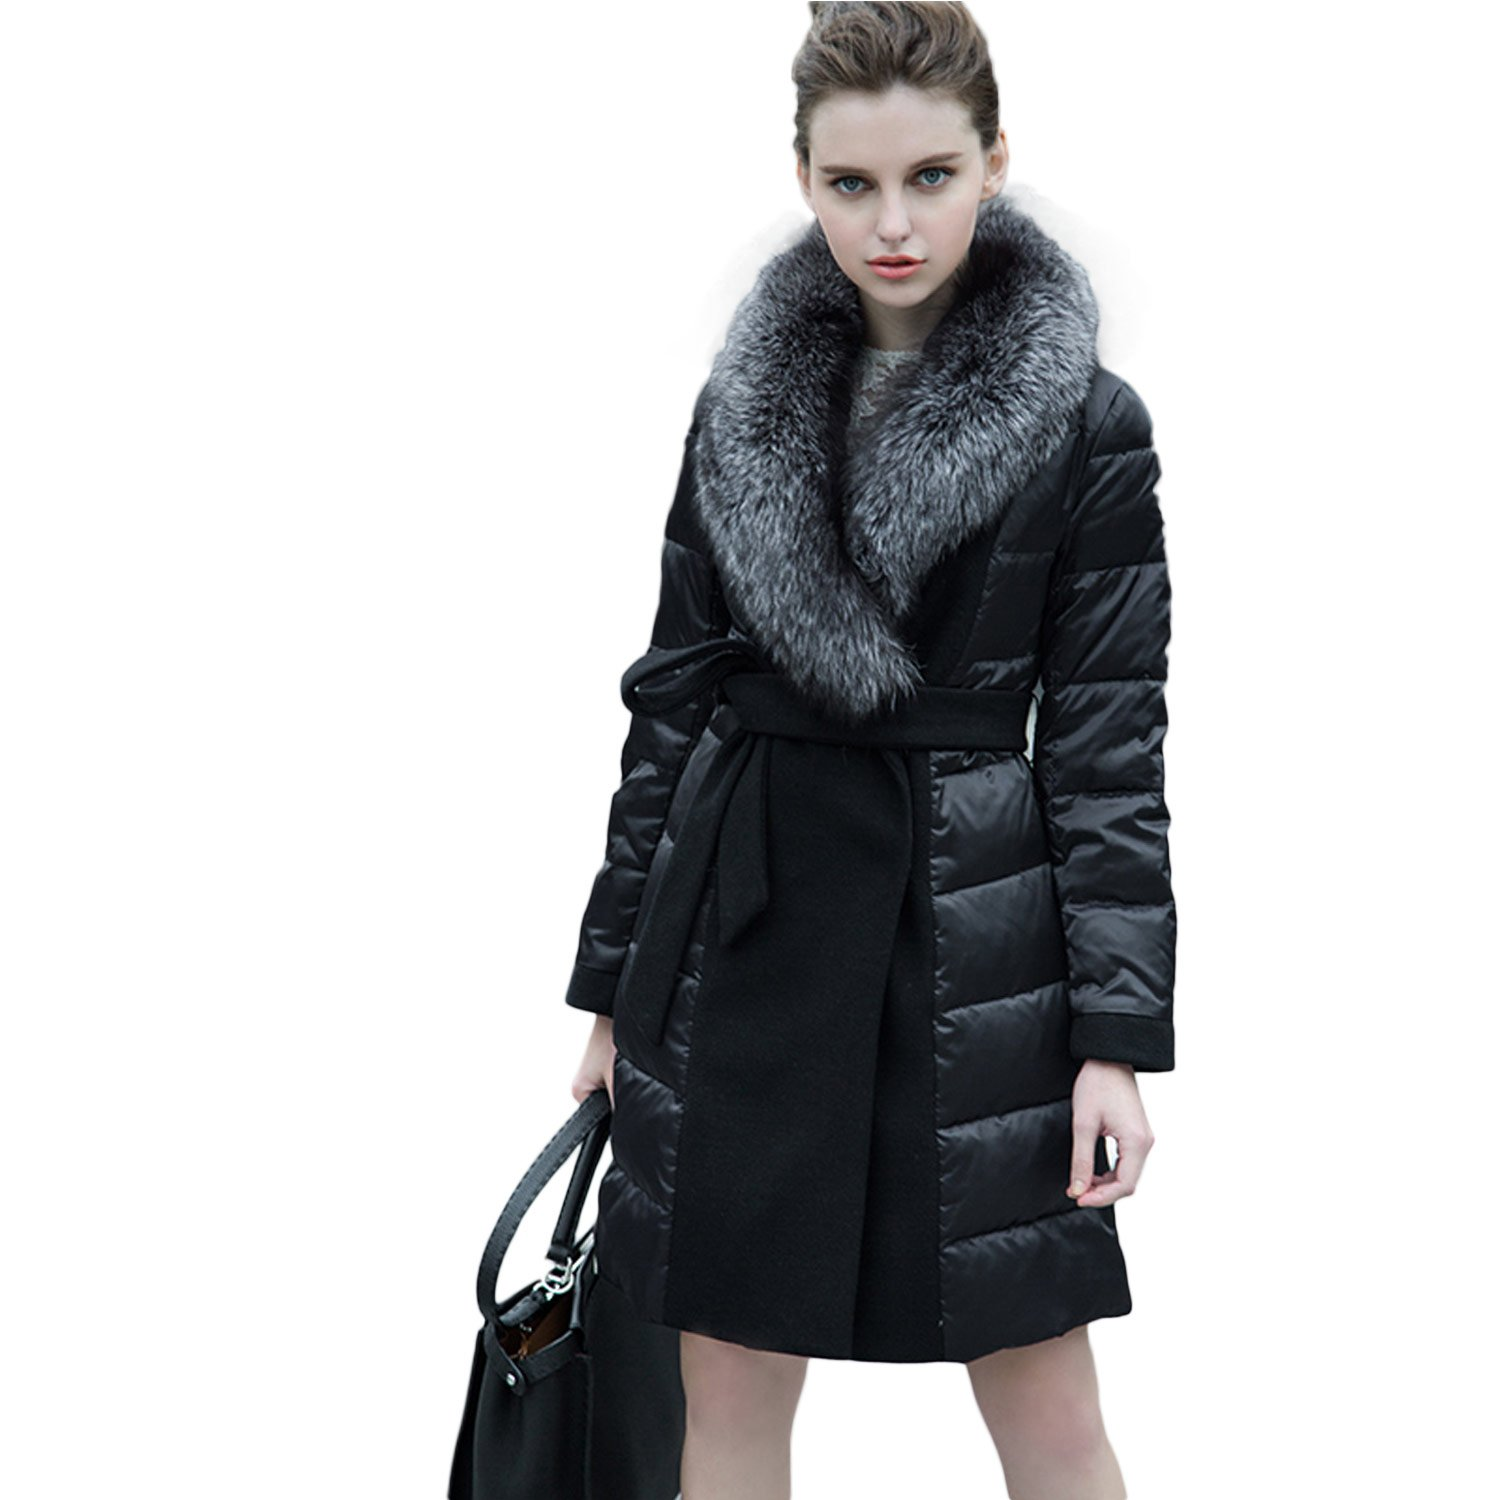 Mandy's Women's Winter Long Down Coat with Genuine Fox Fur Collar (Medium)